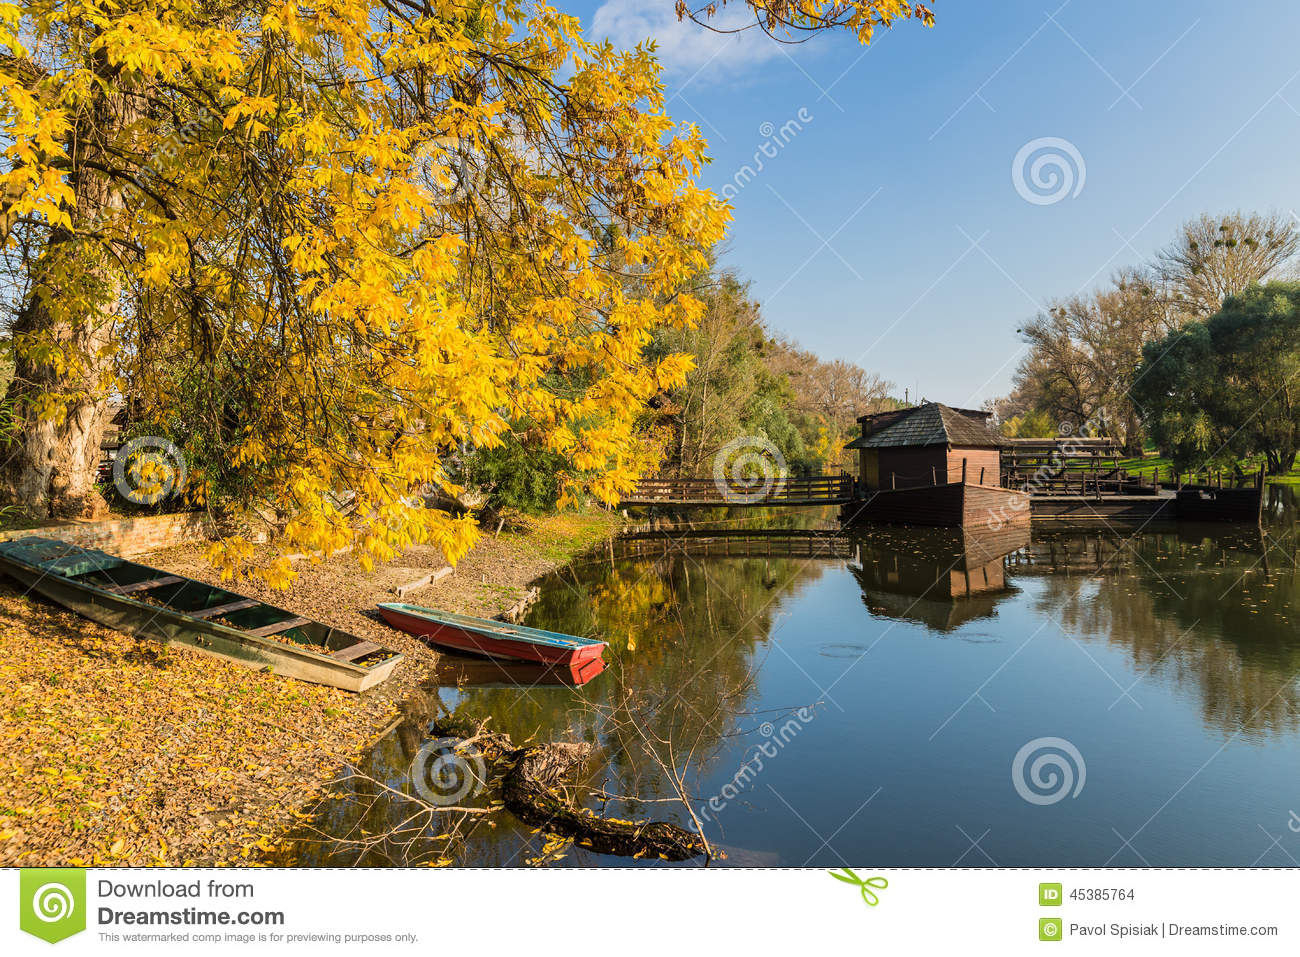 Stock Photo Autumn Scenery Water Mill Watermill Boat Slovak Town Kolarovo Image45385764 on Small Lake House Plans